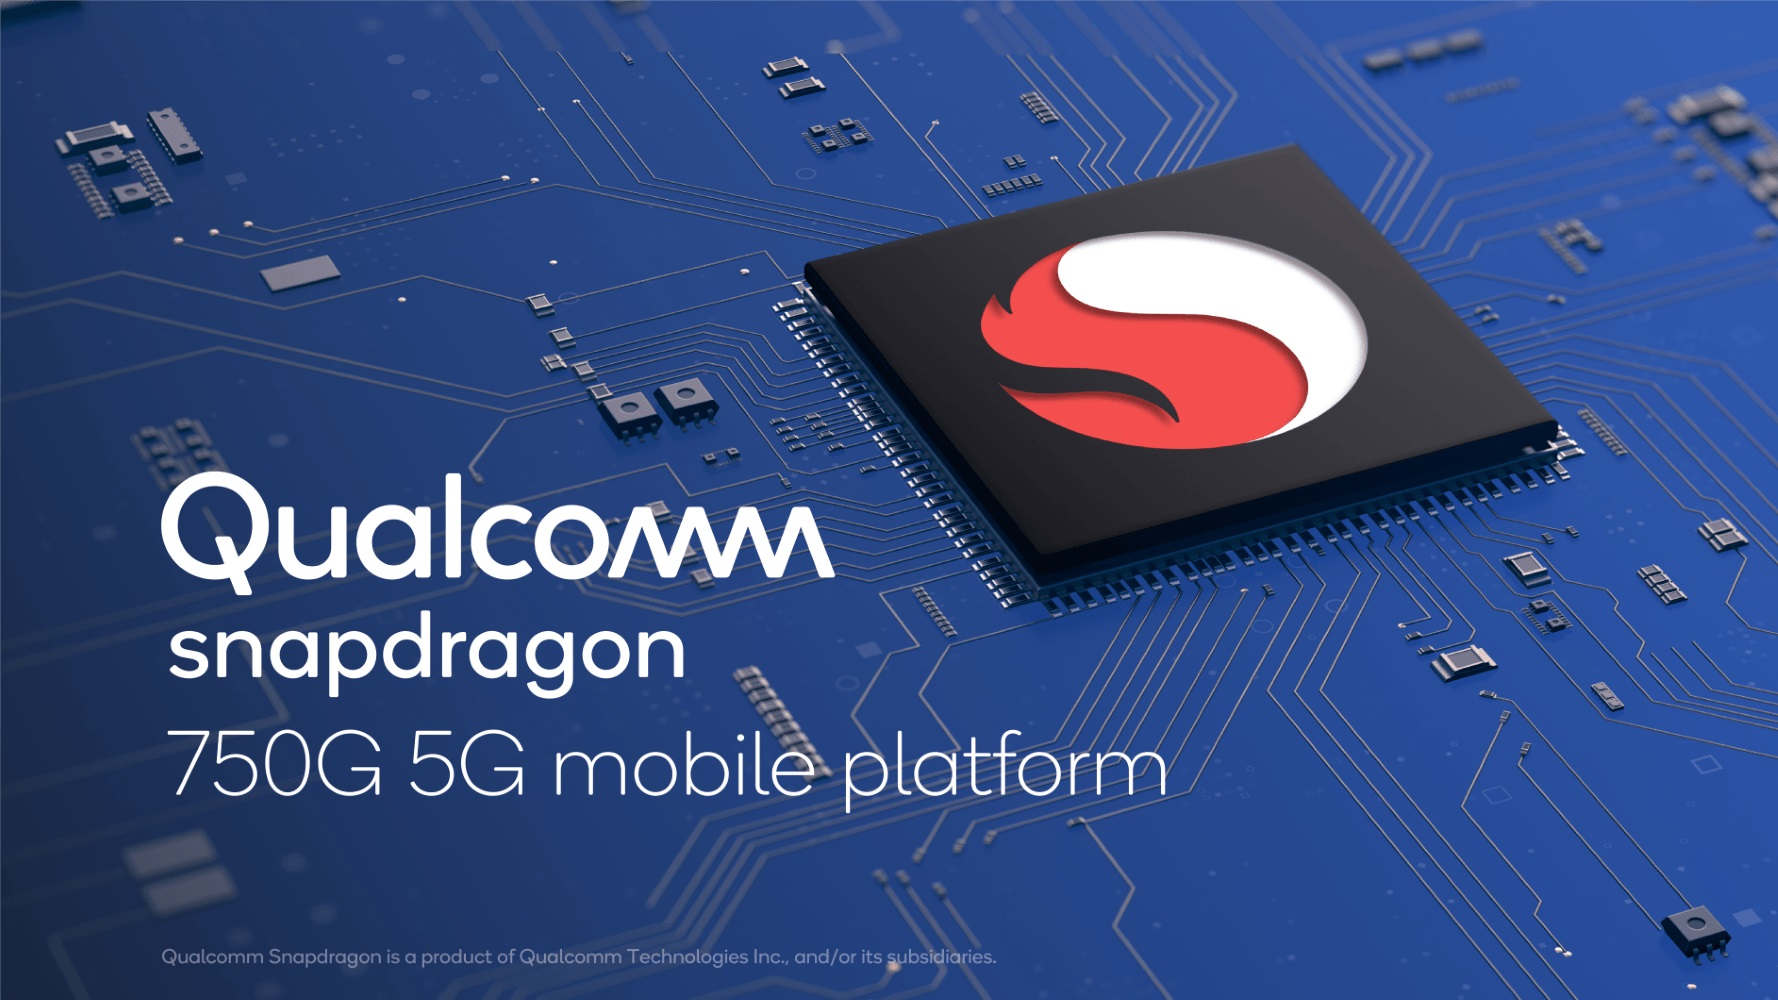 procesor Qualcomm Snapdragon 750G processor